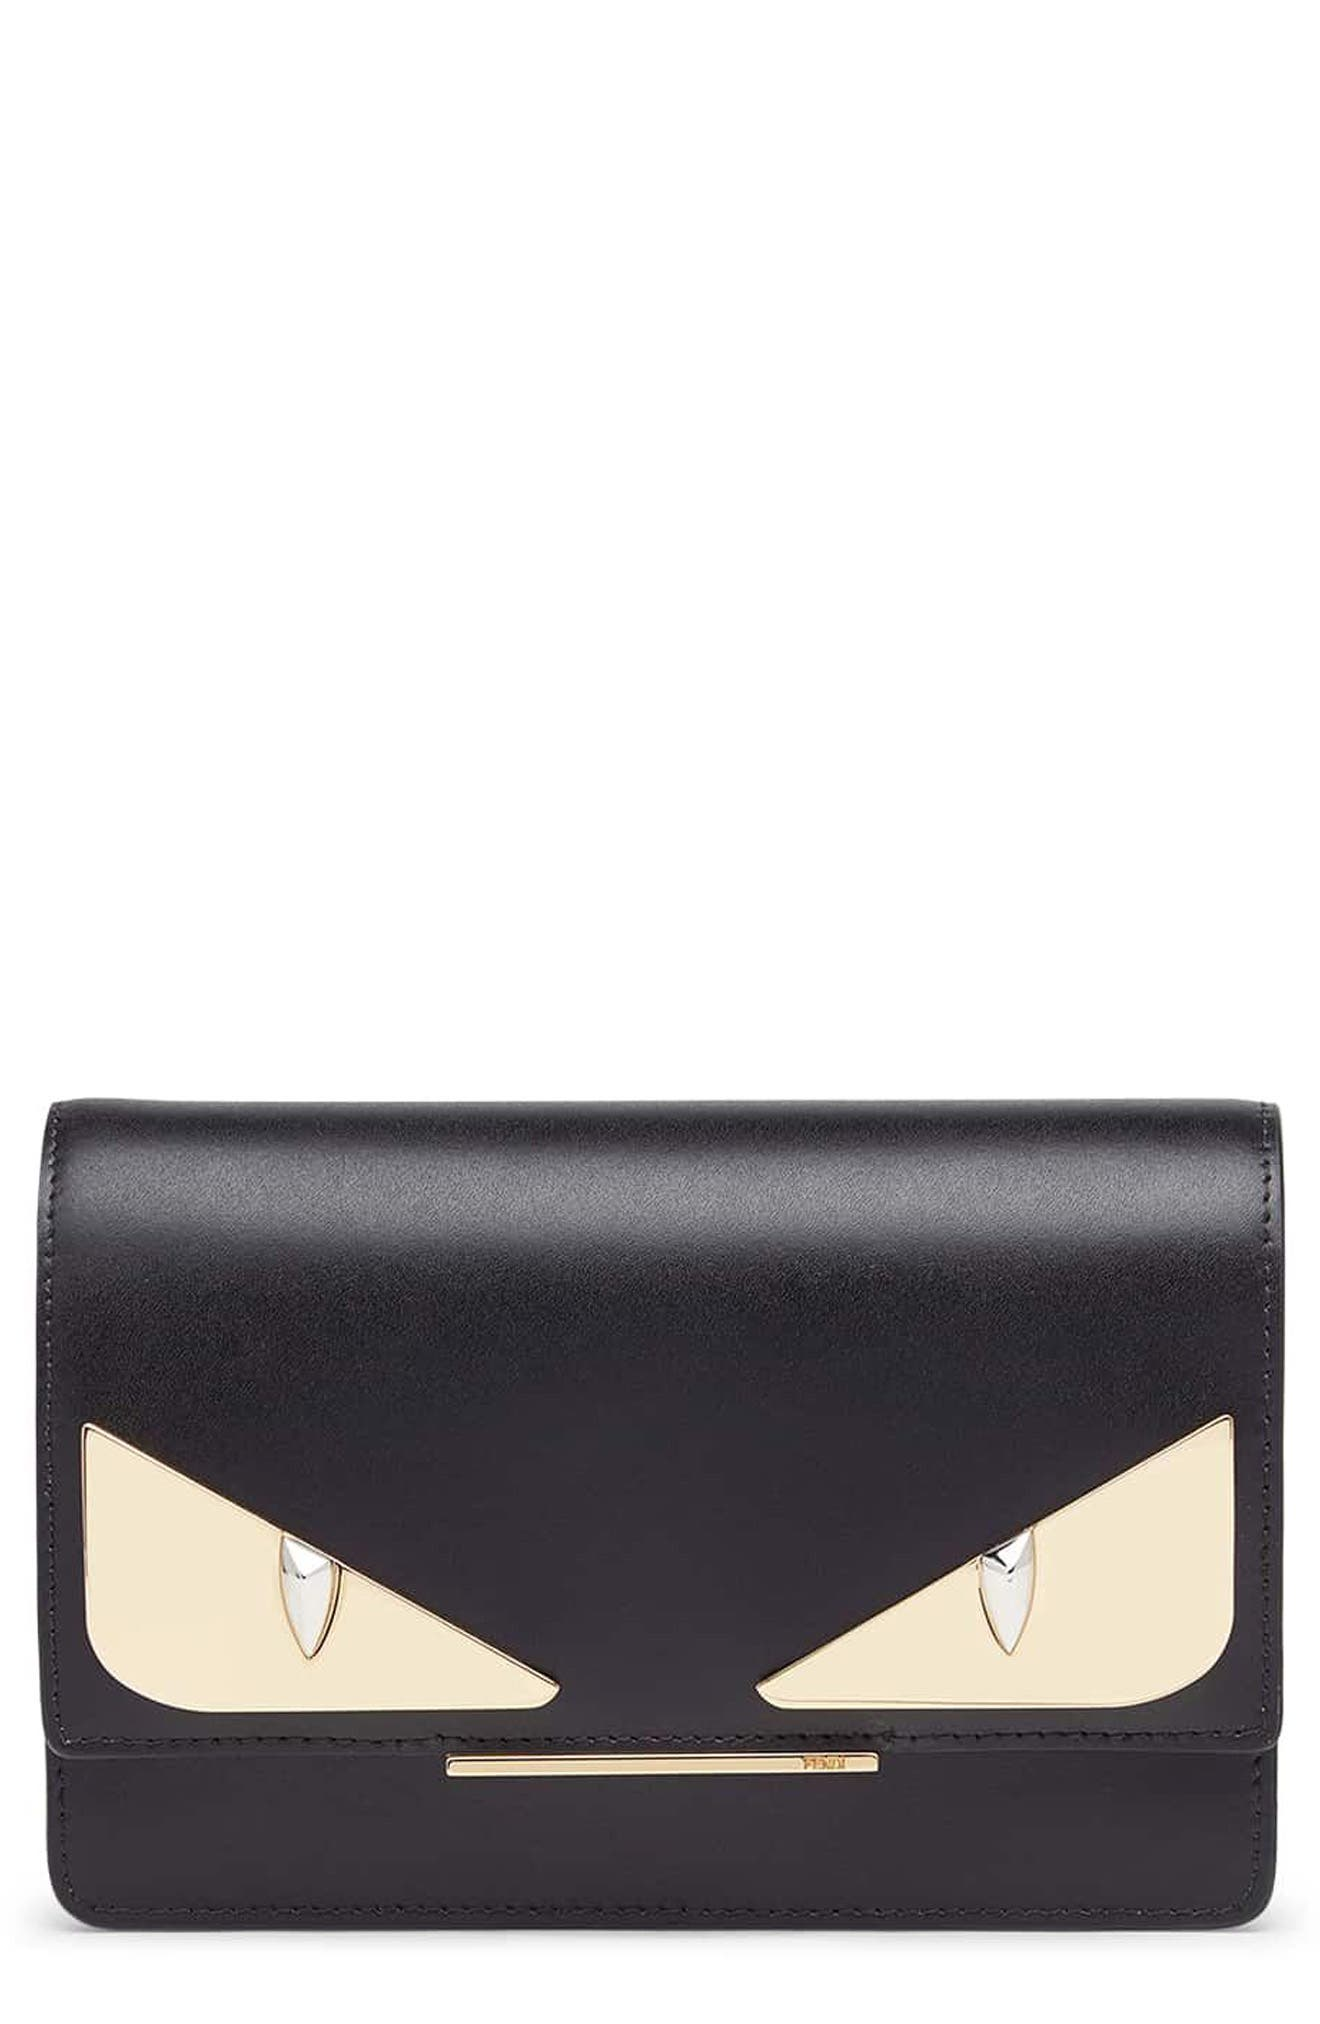 FENDI Tube Monster Leather Wallet on a Chain, Main, color, 006